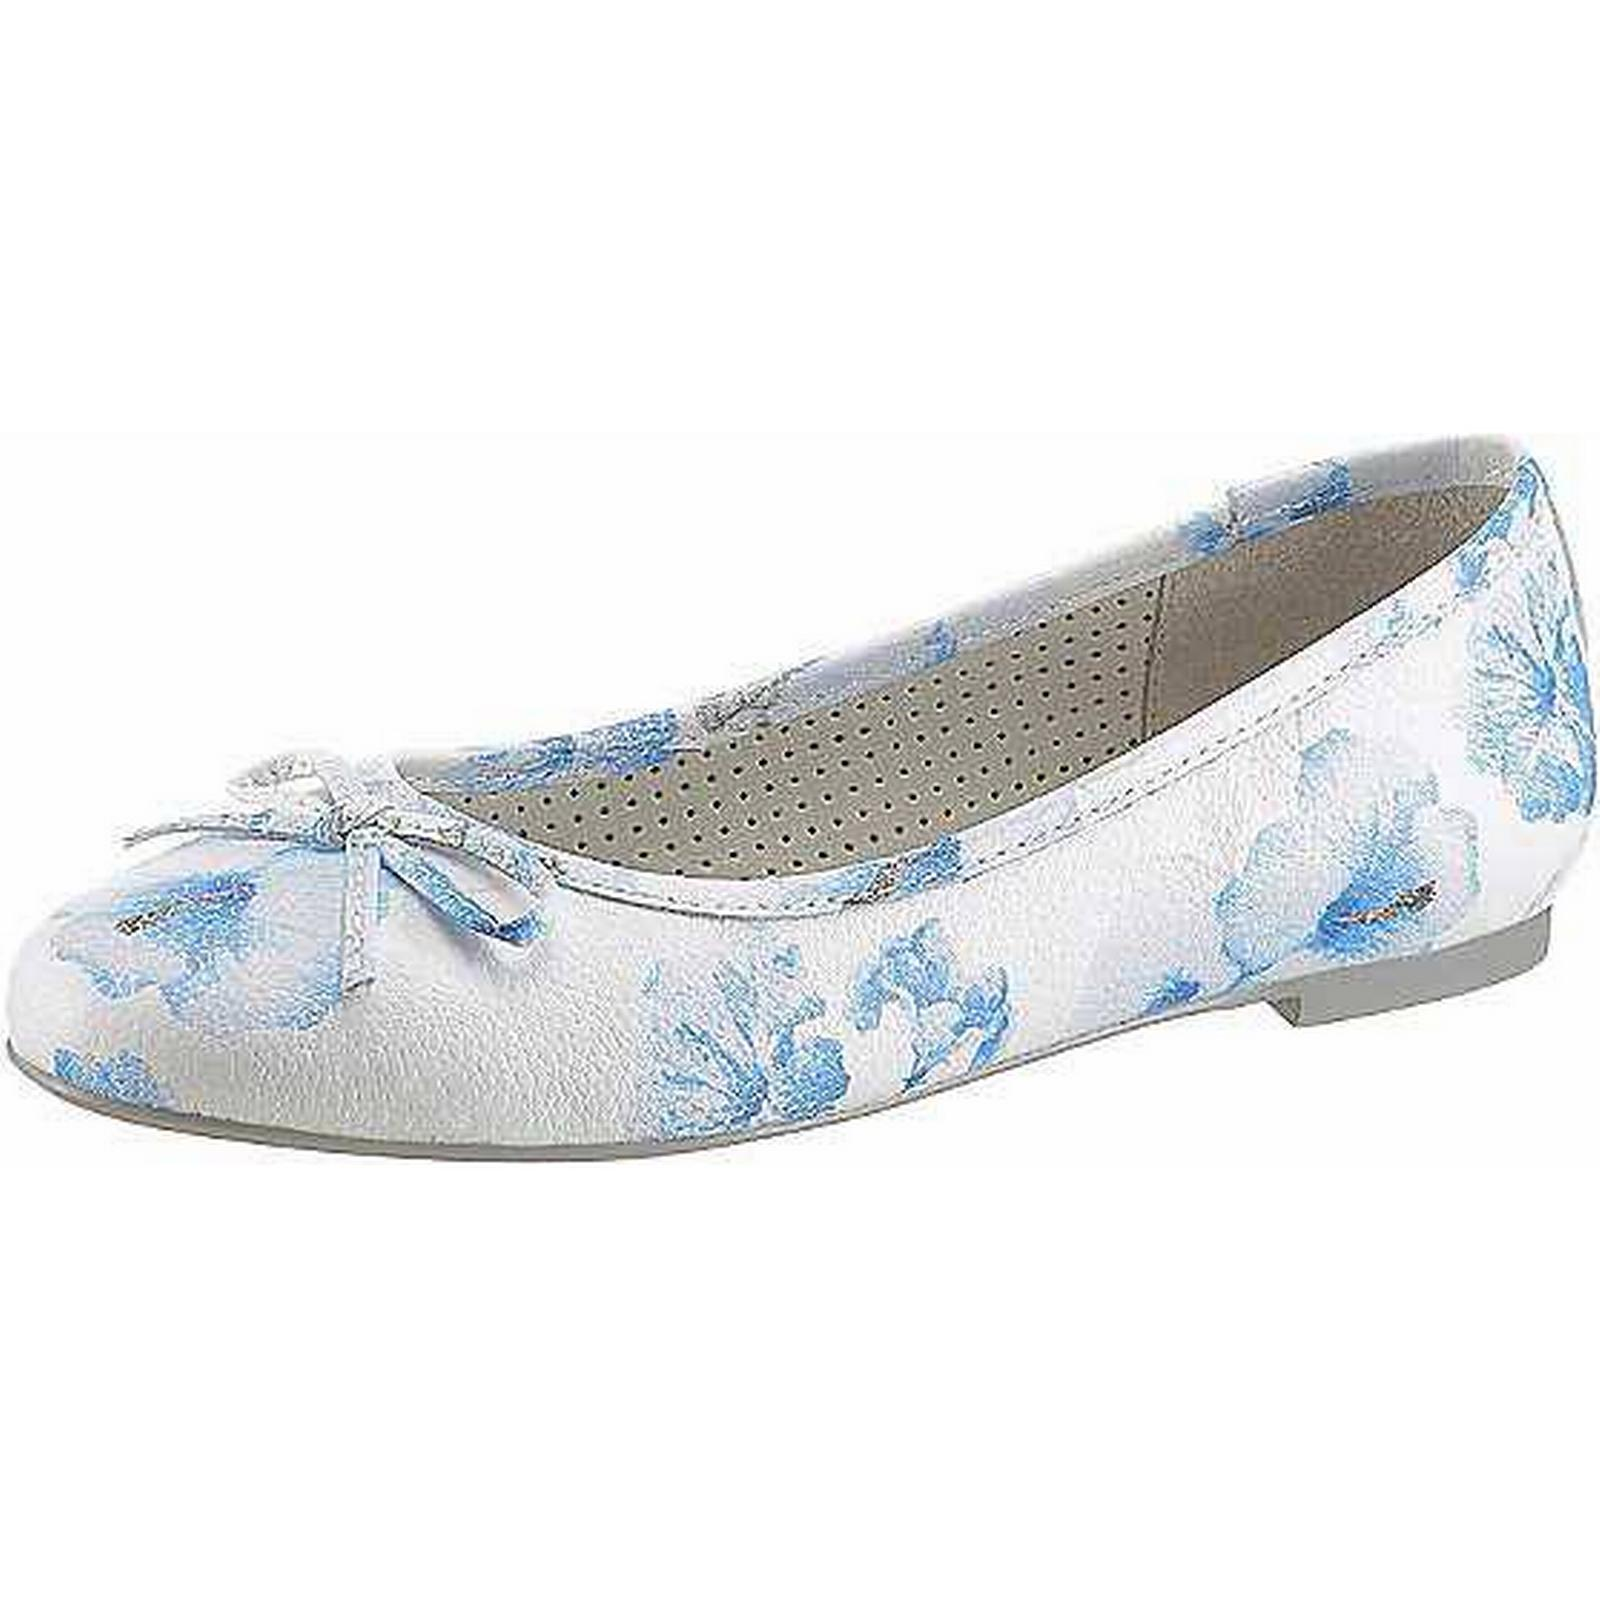 Be Natural Floral Natural Print Ballerinas by Be Natural Floral 1d1733